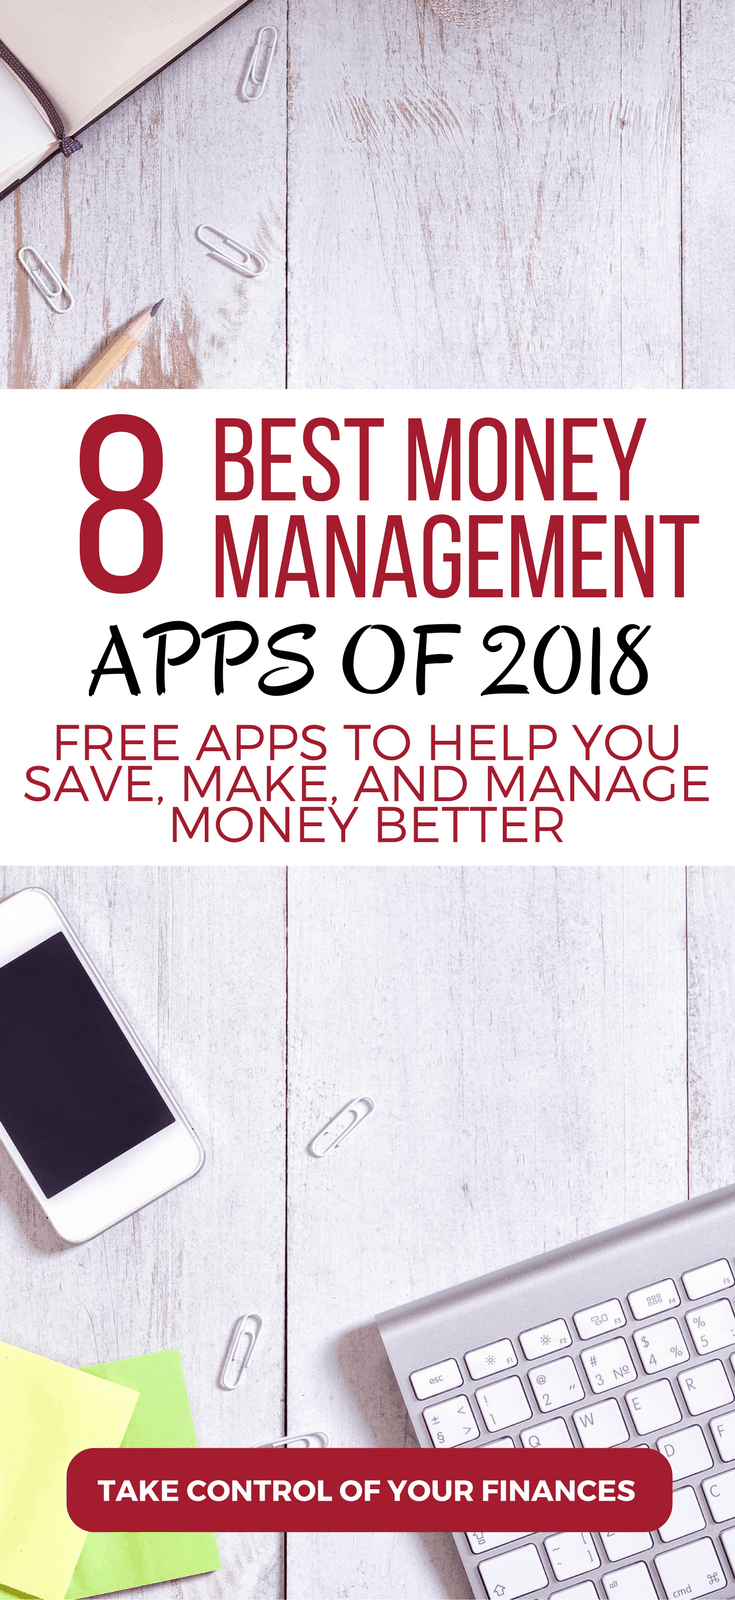 Looking for better ways to save and manage your money? These are the 8 best money management apps that will help you take control of your finances.money apps | budgeting apps | make money apps | save money apps | apps for saving money | grocery store apps | cash back apps#money #family #apps